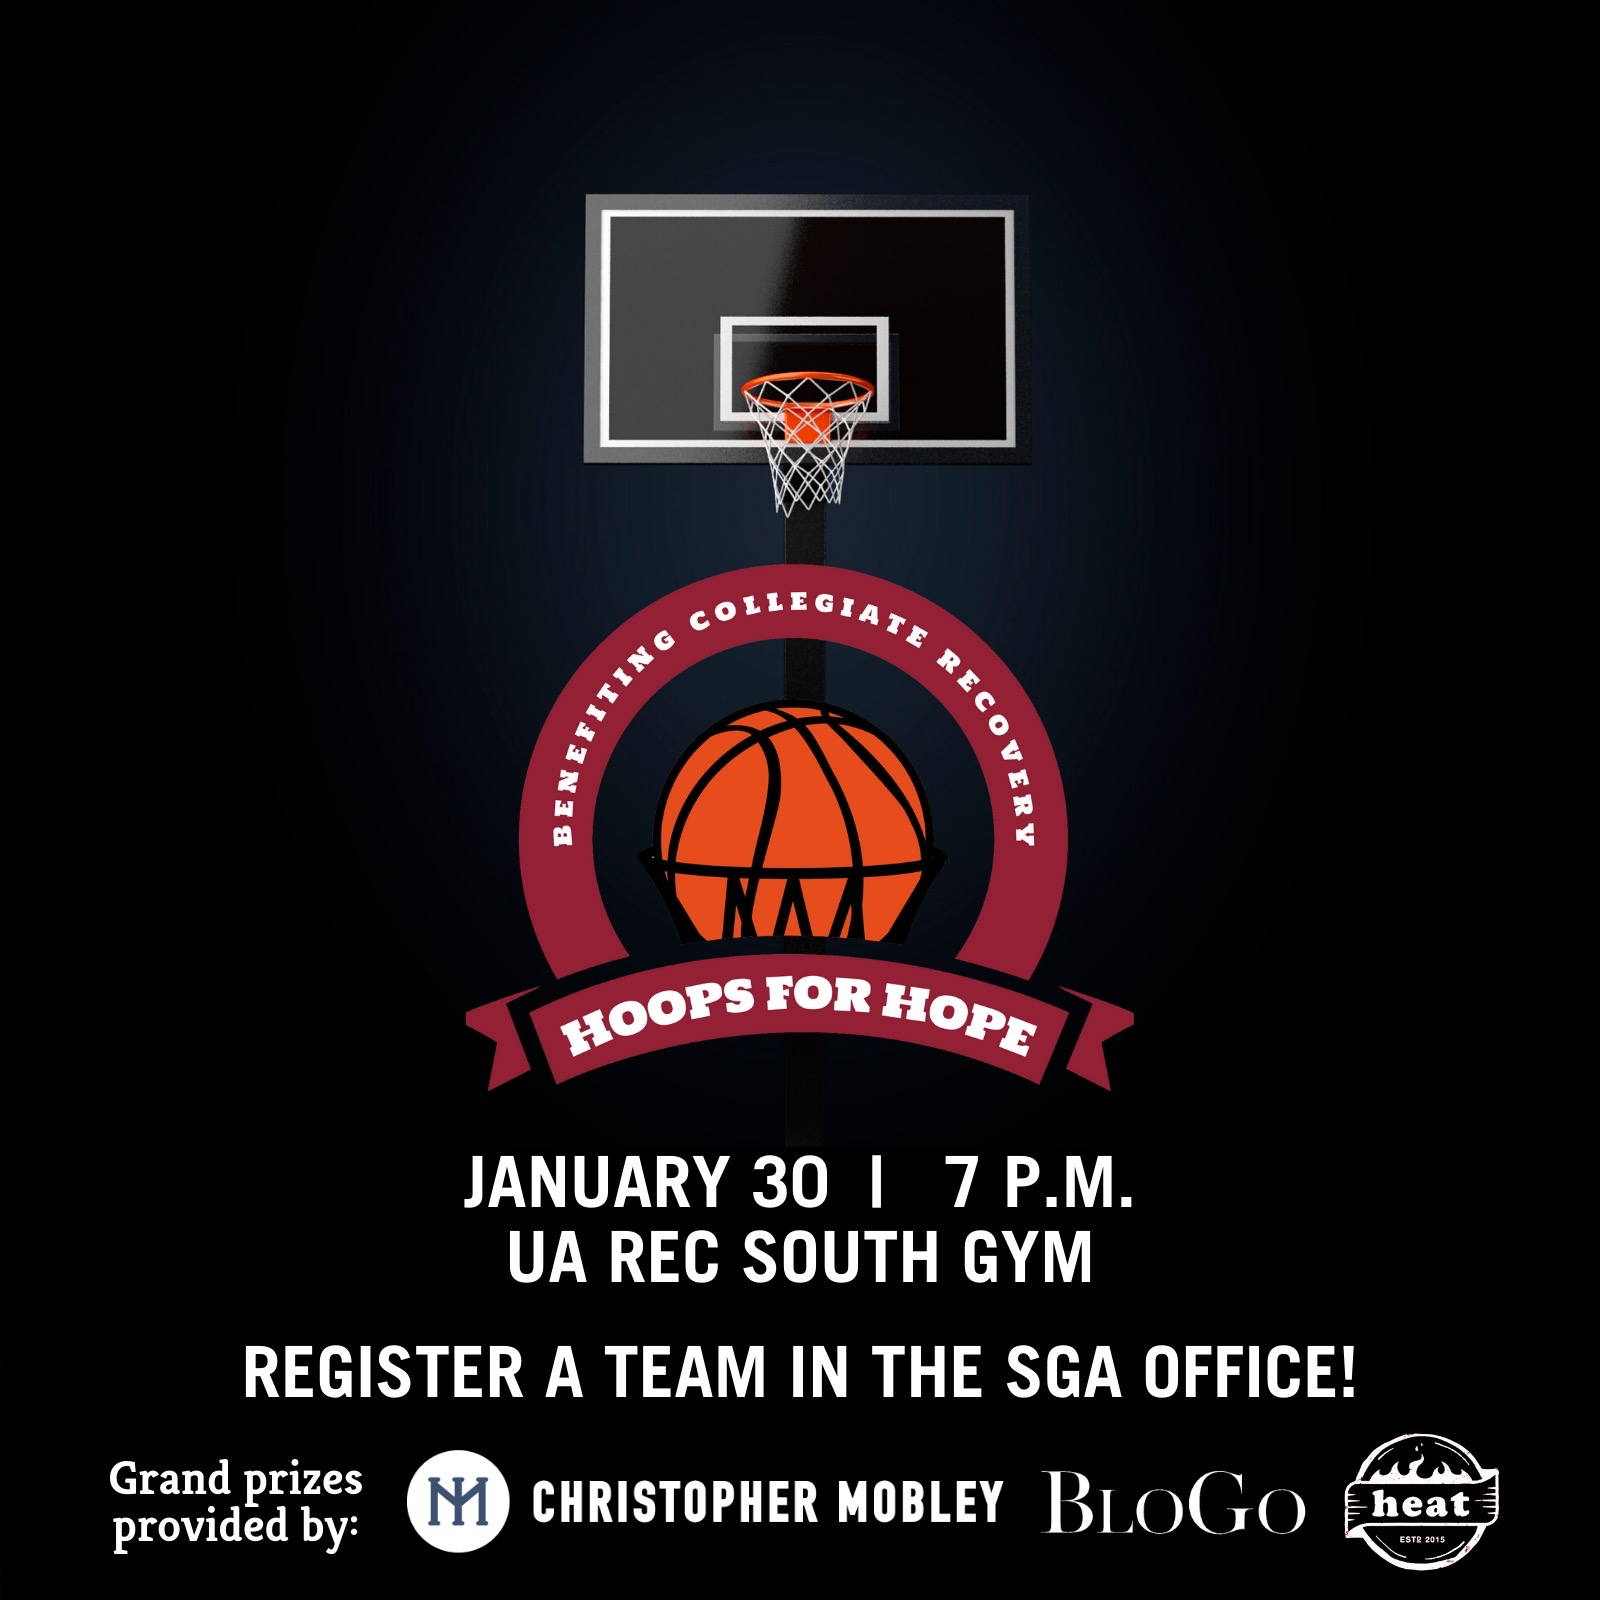 Hoops for Hope benefitting Collegiate Recovery will be hosted January 30th at 7 pm at the UA Rec South Gym. Register your team in the SGA Office